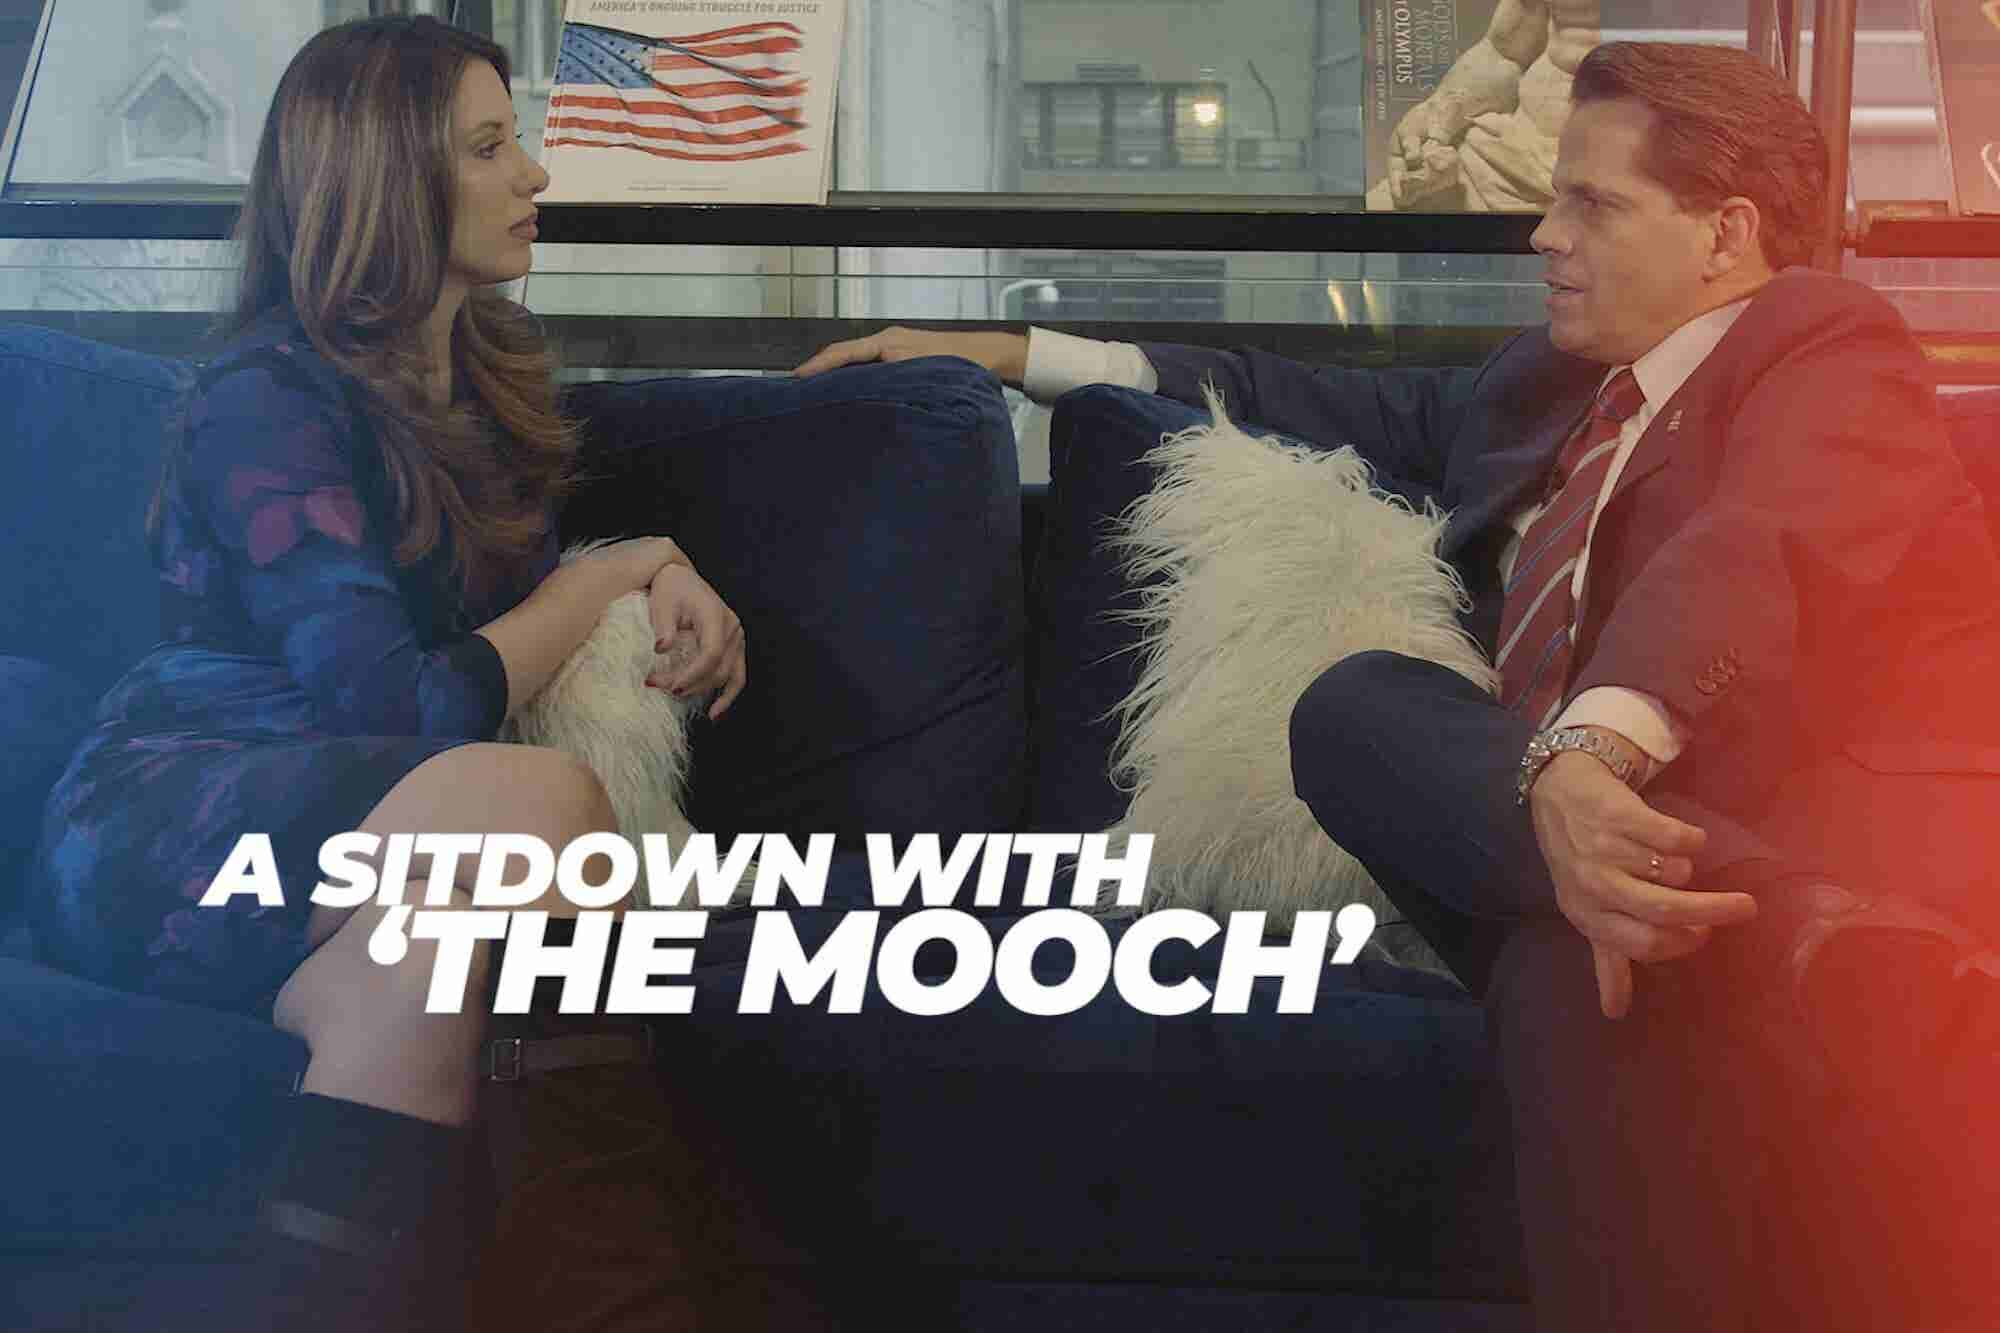 A Candid Conversation With Anthony 'The Mooch' Scaramucci: Working for Trump, Founding a $12 Billion Company and More